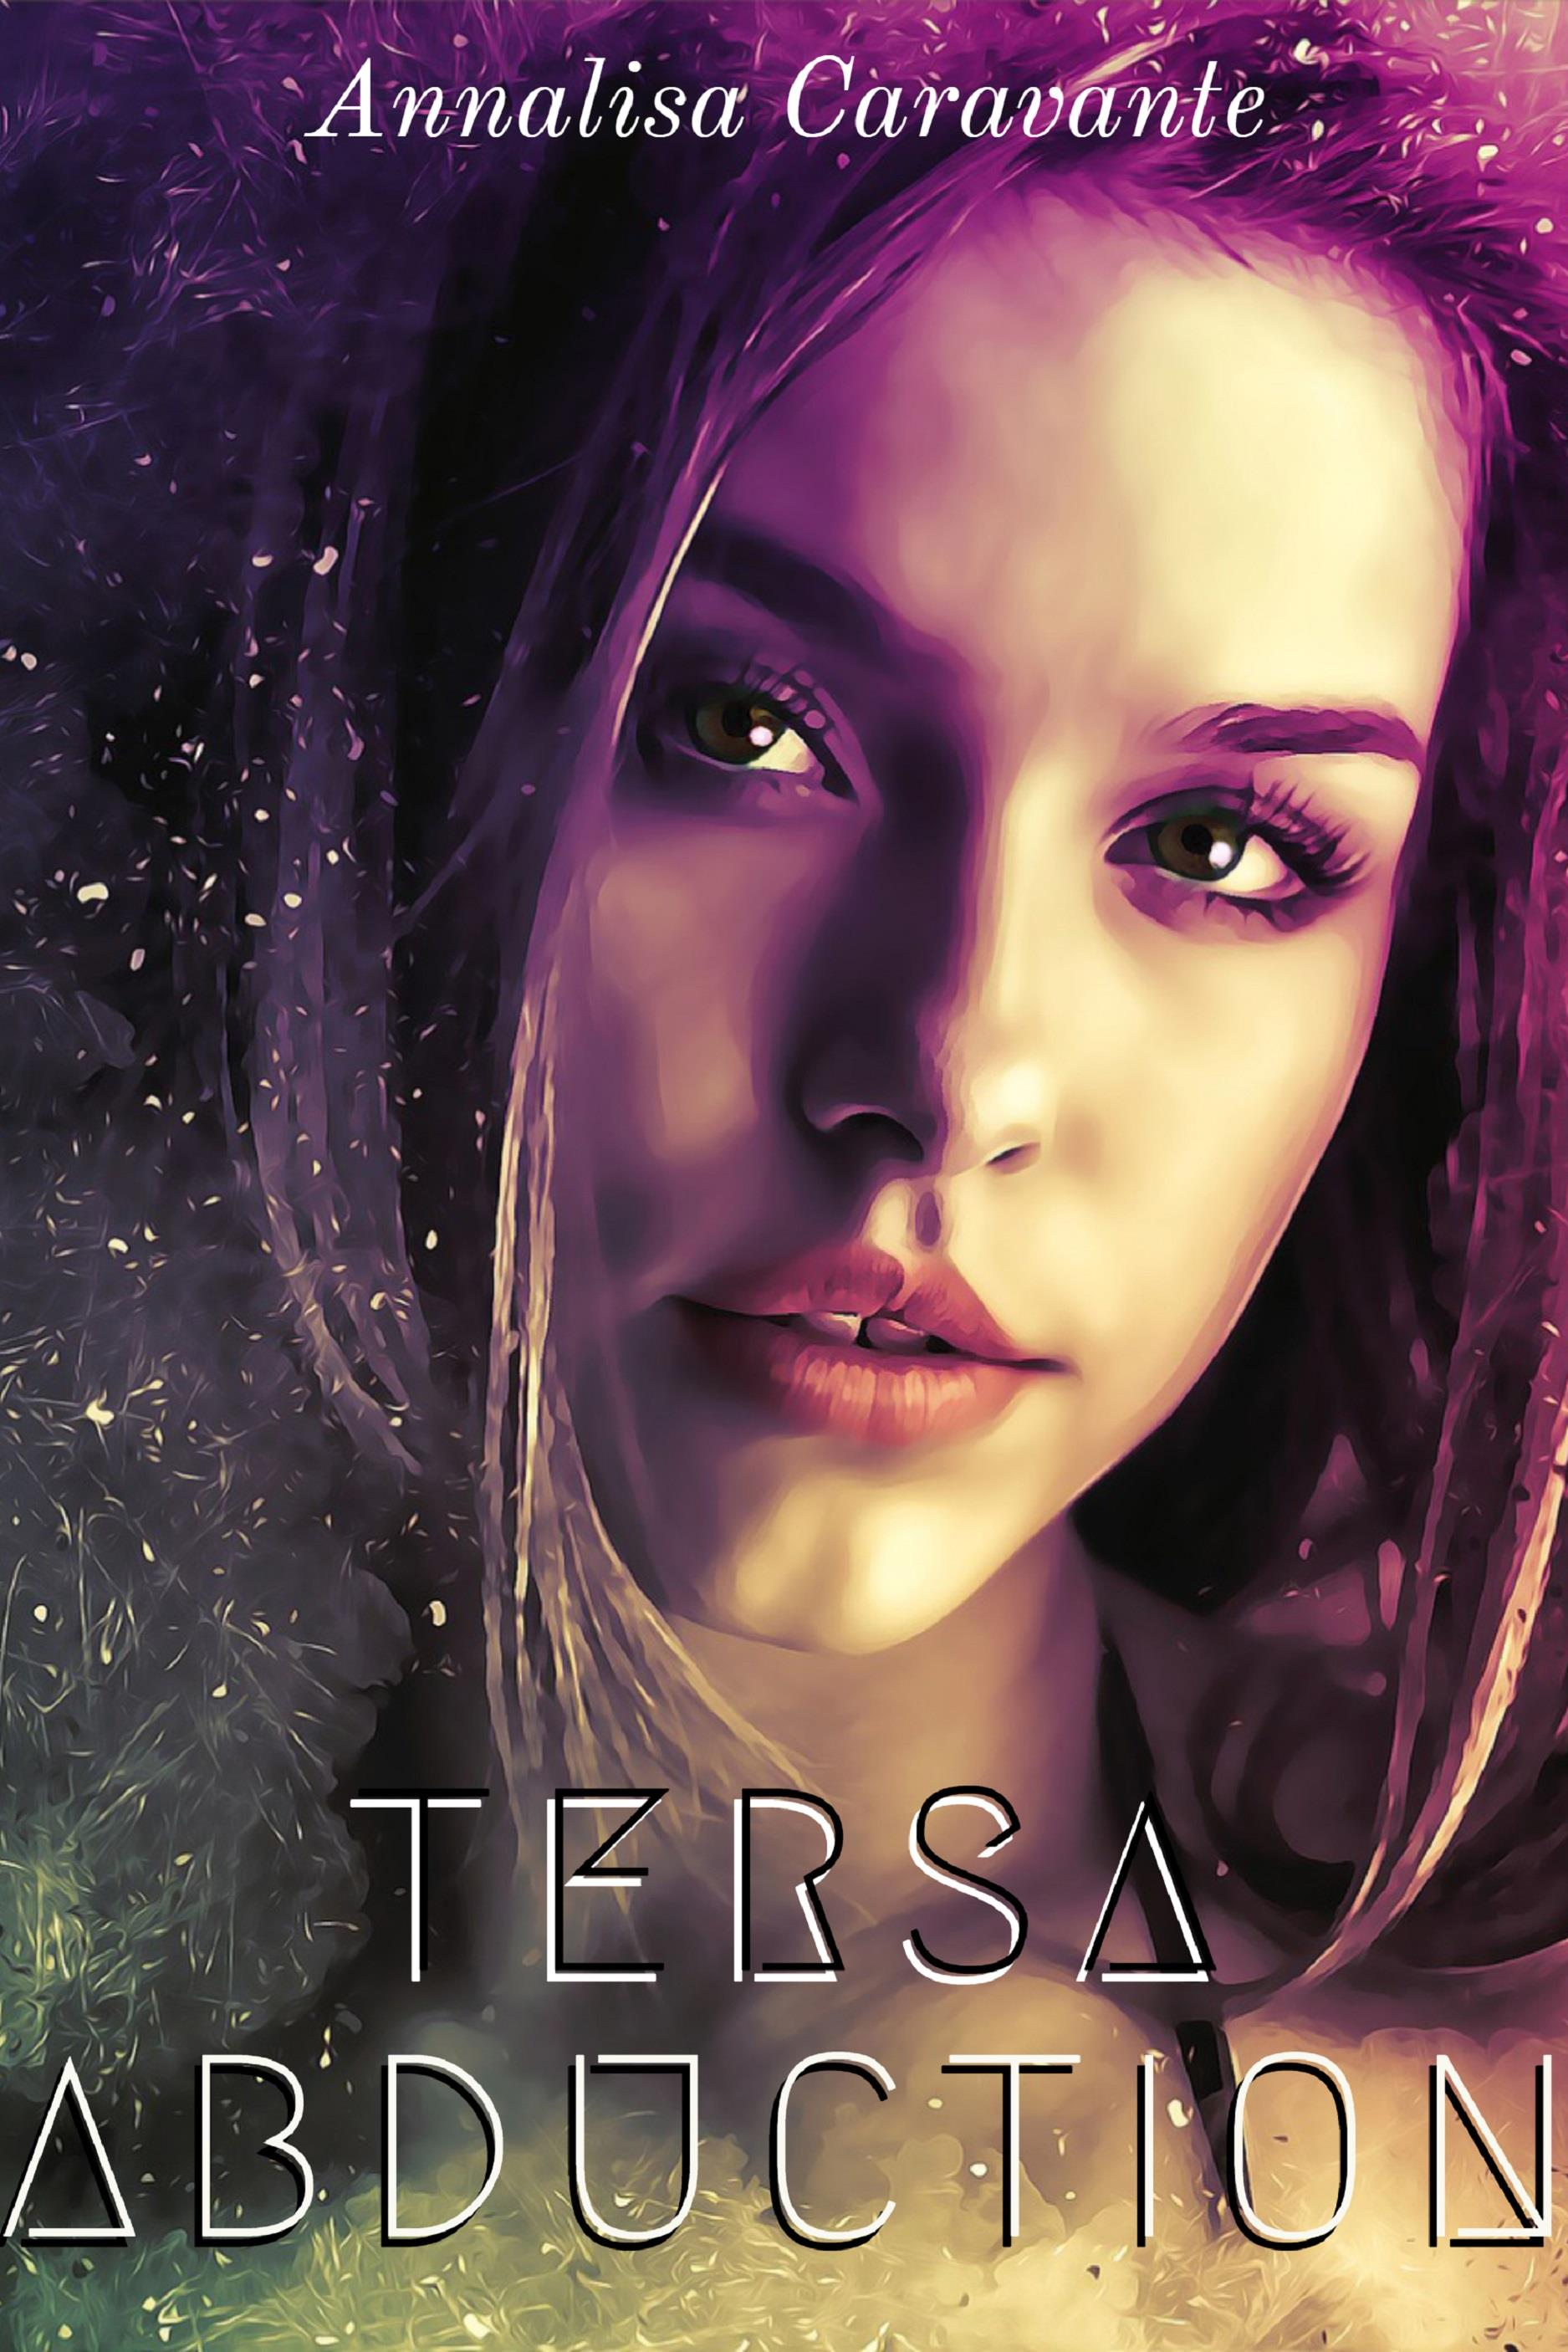 Tersa. Abduction